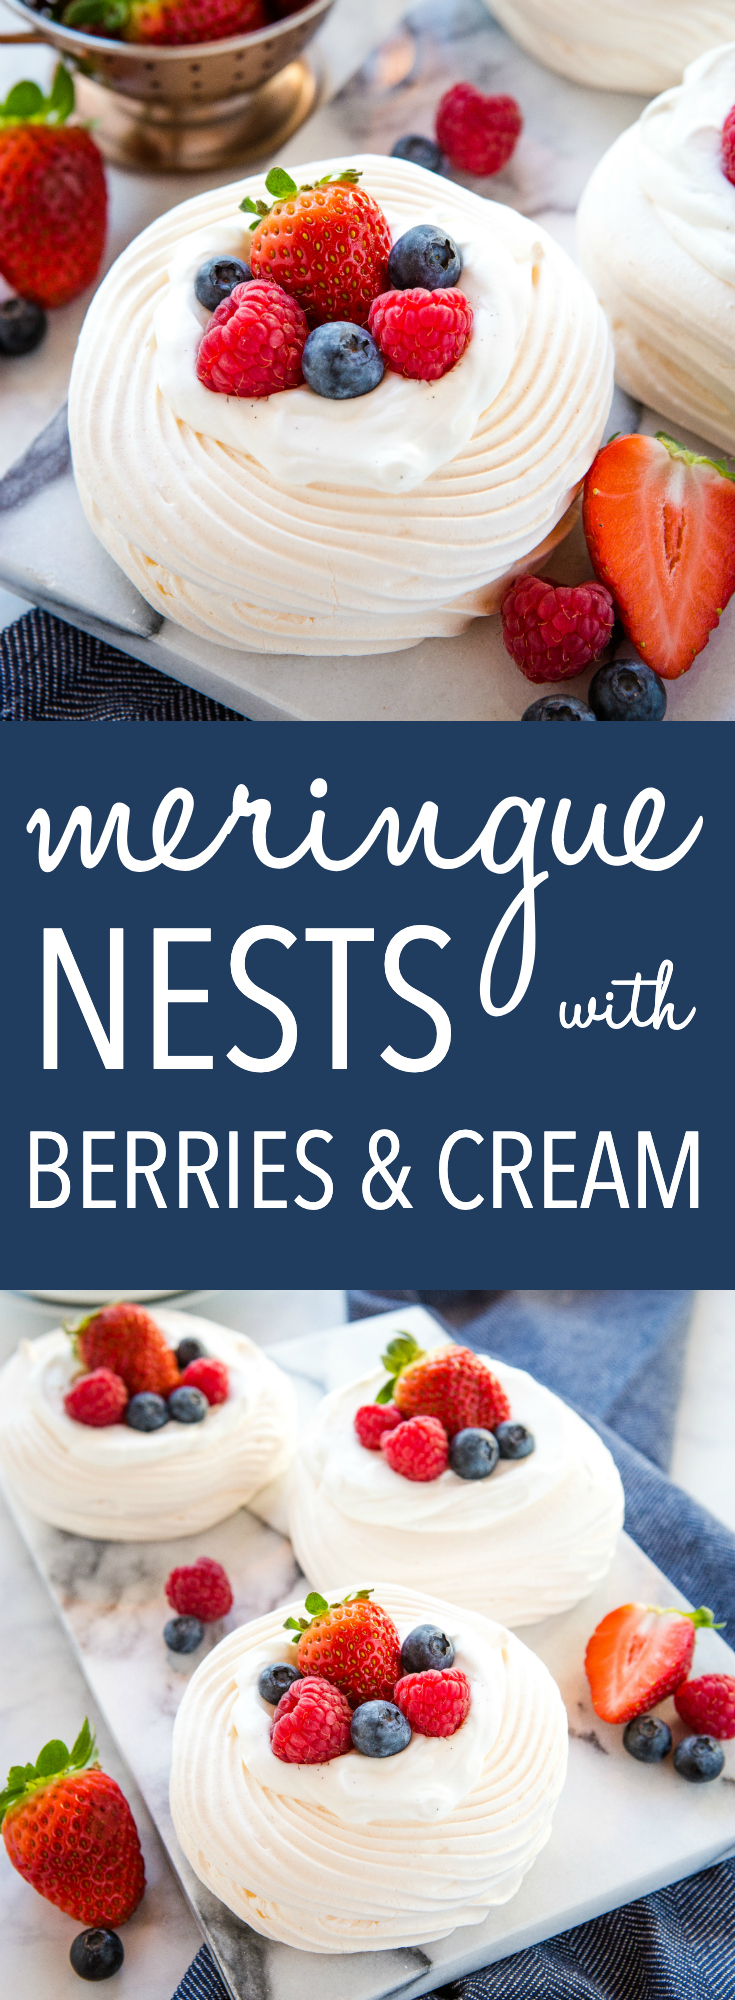 These Meringue Nests with Berries and Vanilla Cream make the perfect light-tasting summer dessert that's gluten-free and packed with fresh fruit! Recipe from thebusybaker.ca! #glutenfree #dessert #meringue #berries #vanilla #cream #easy #recipe via @busybakerblog